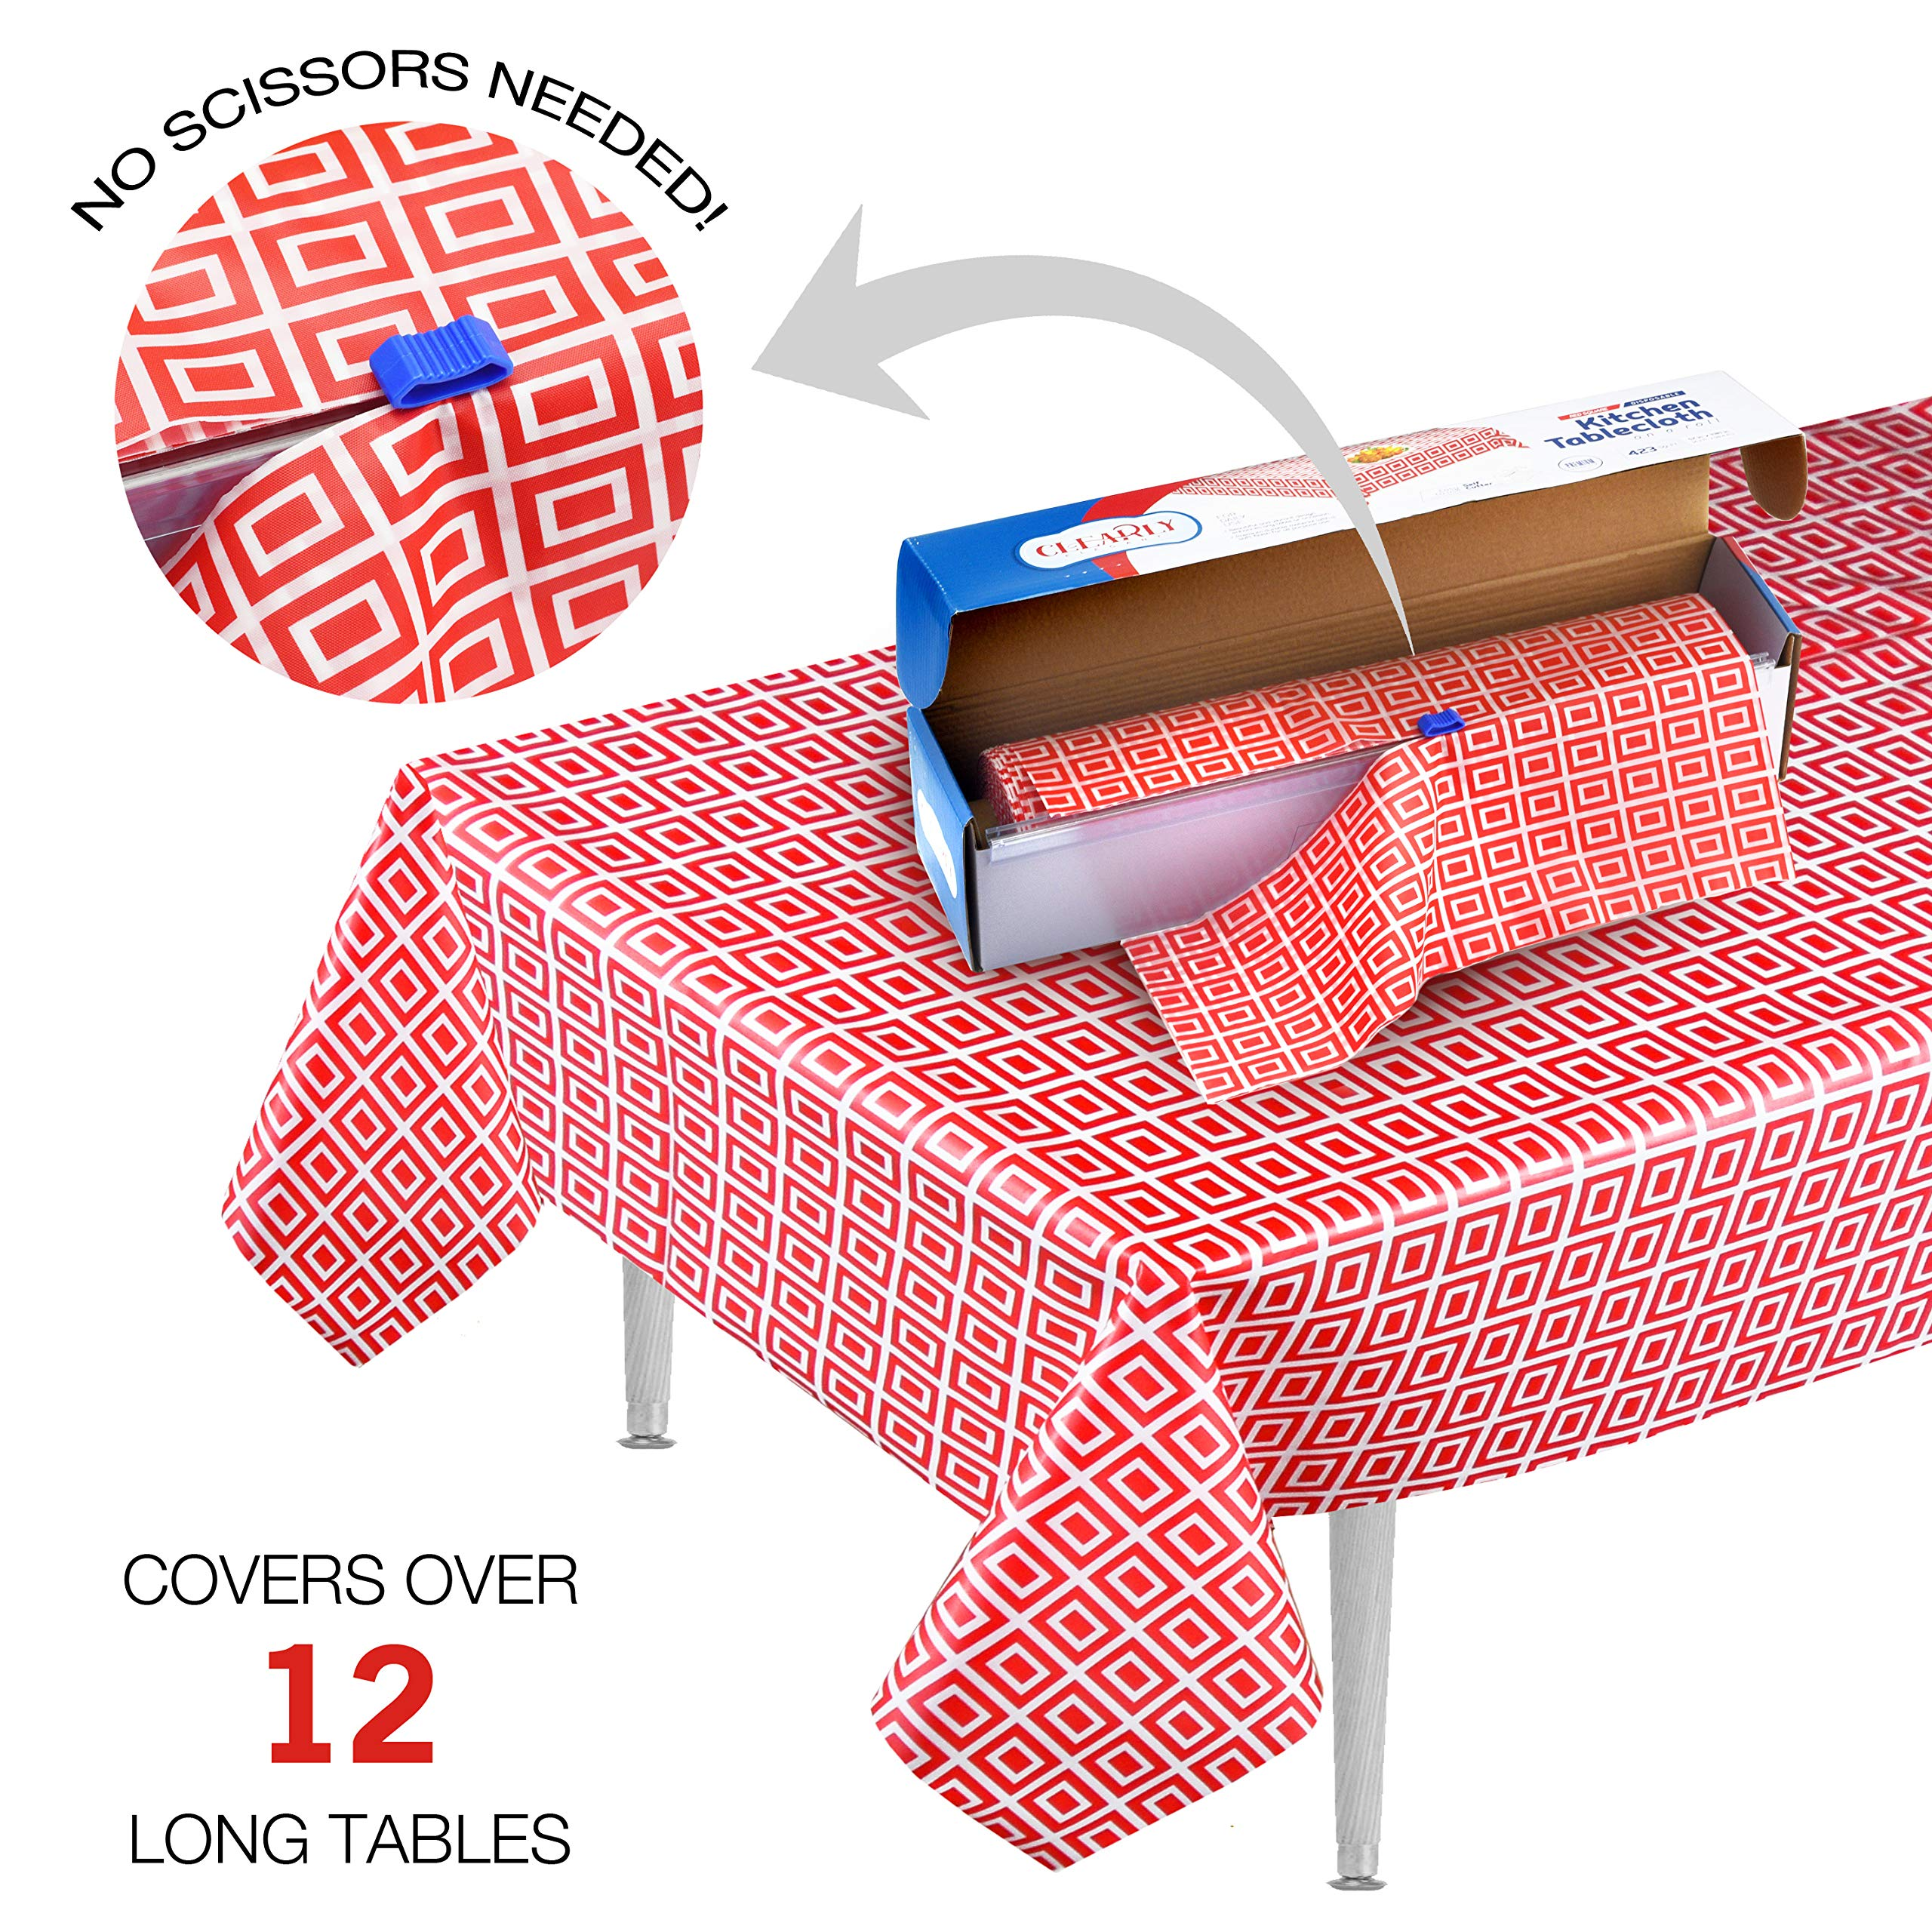 Clearly Elegant Picnic / Party Plastic Disposable Tablecloth Roll Red ,Picnic Colored Table Covers On a Roll with Self Cutter Box,Cut Tablecloth to Your Own Table Size,Indoor/Out Door by Clearly Elegant